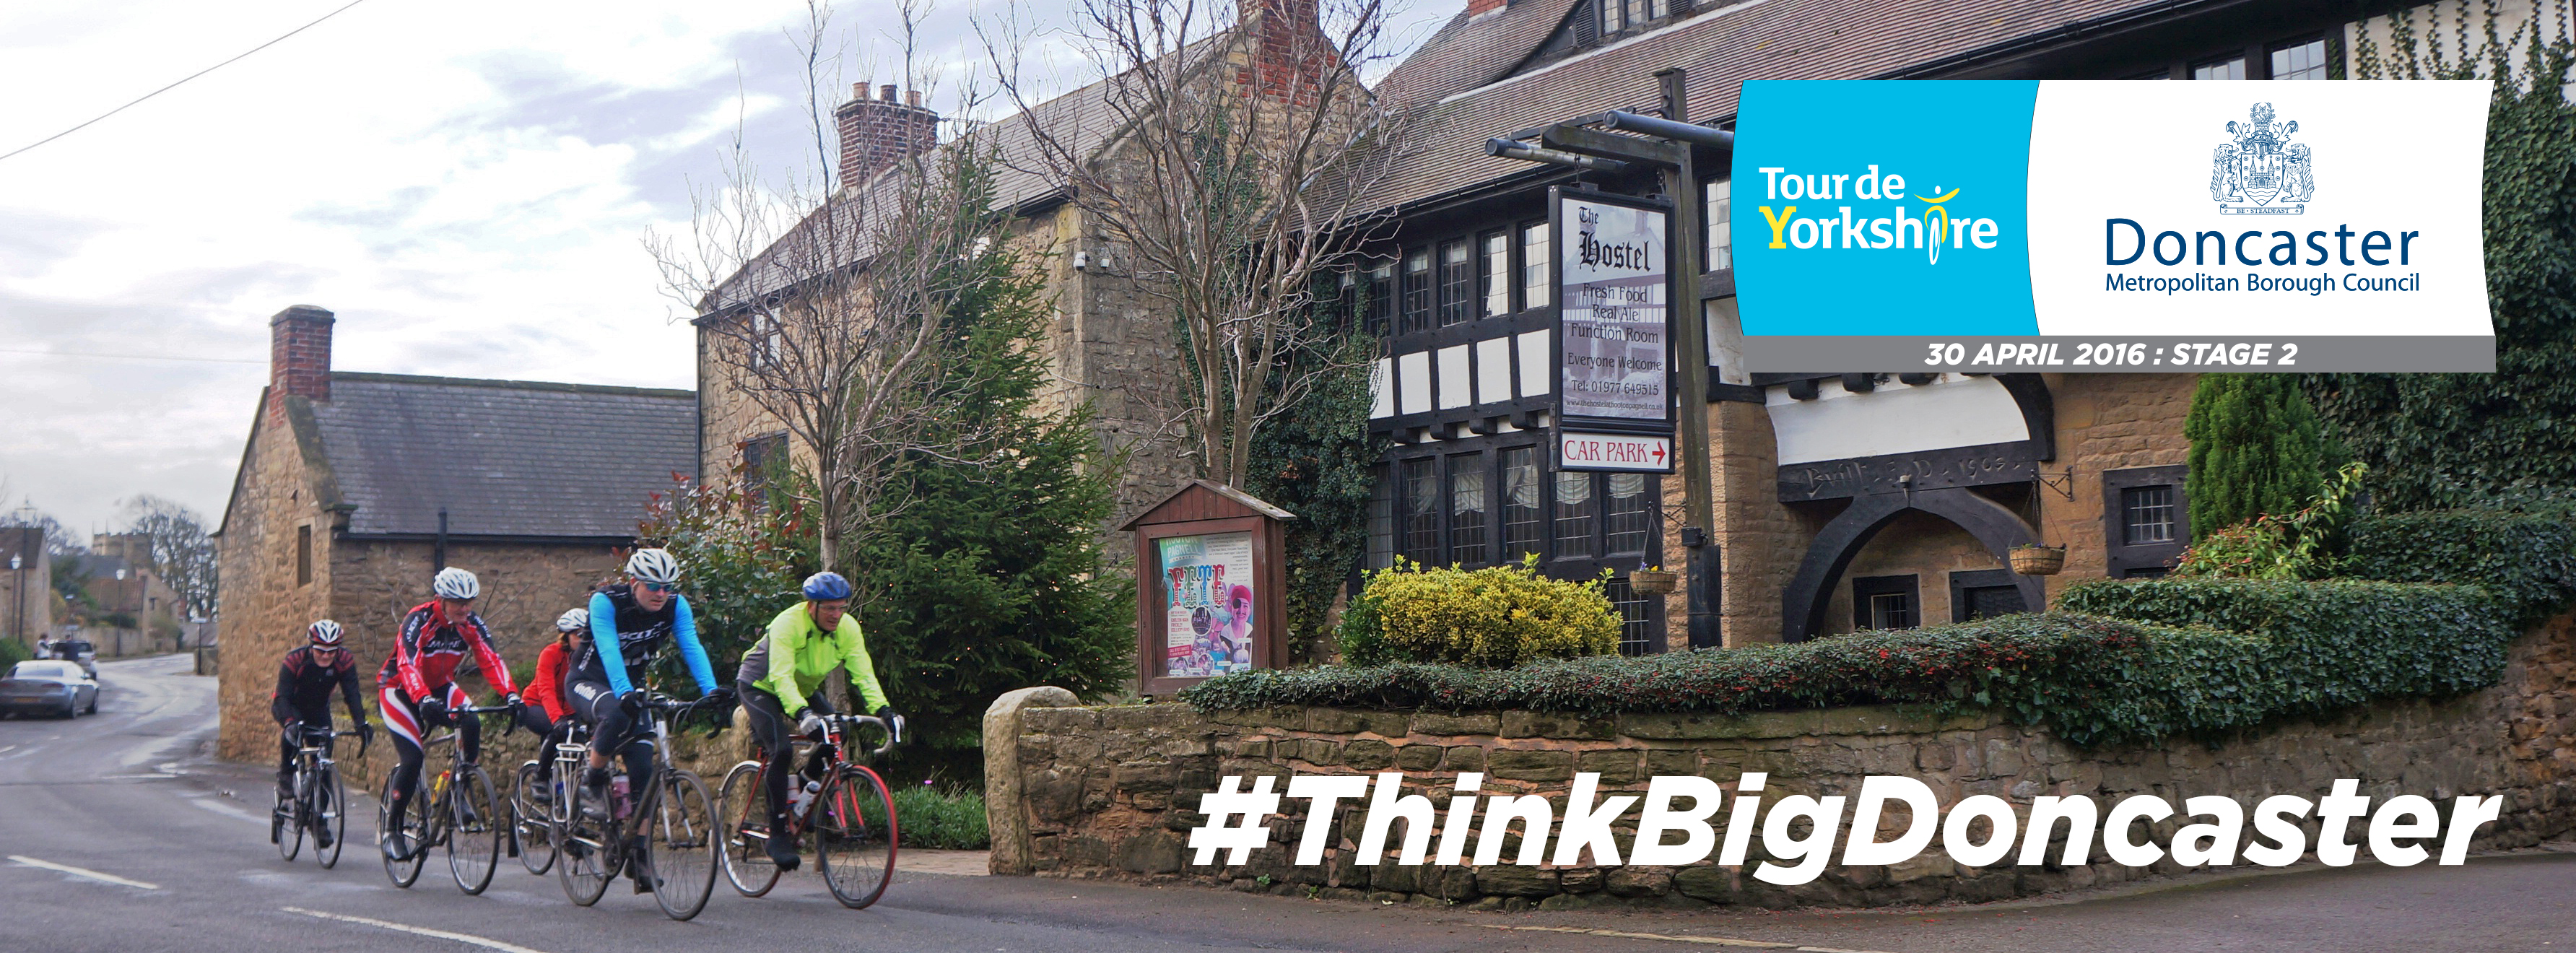 Bike riders travelling through Hooton Pagnell. #ThinkBigDoncaster